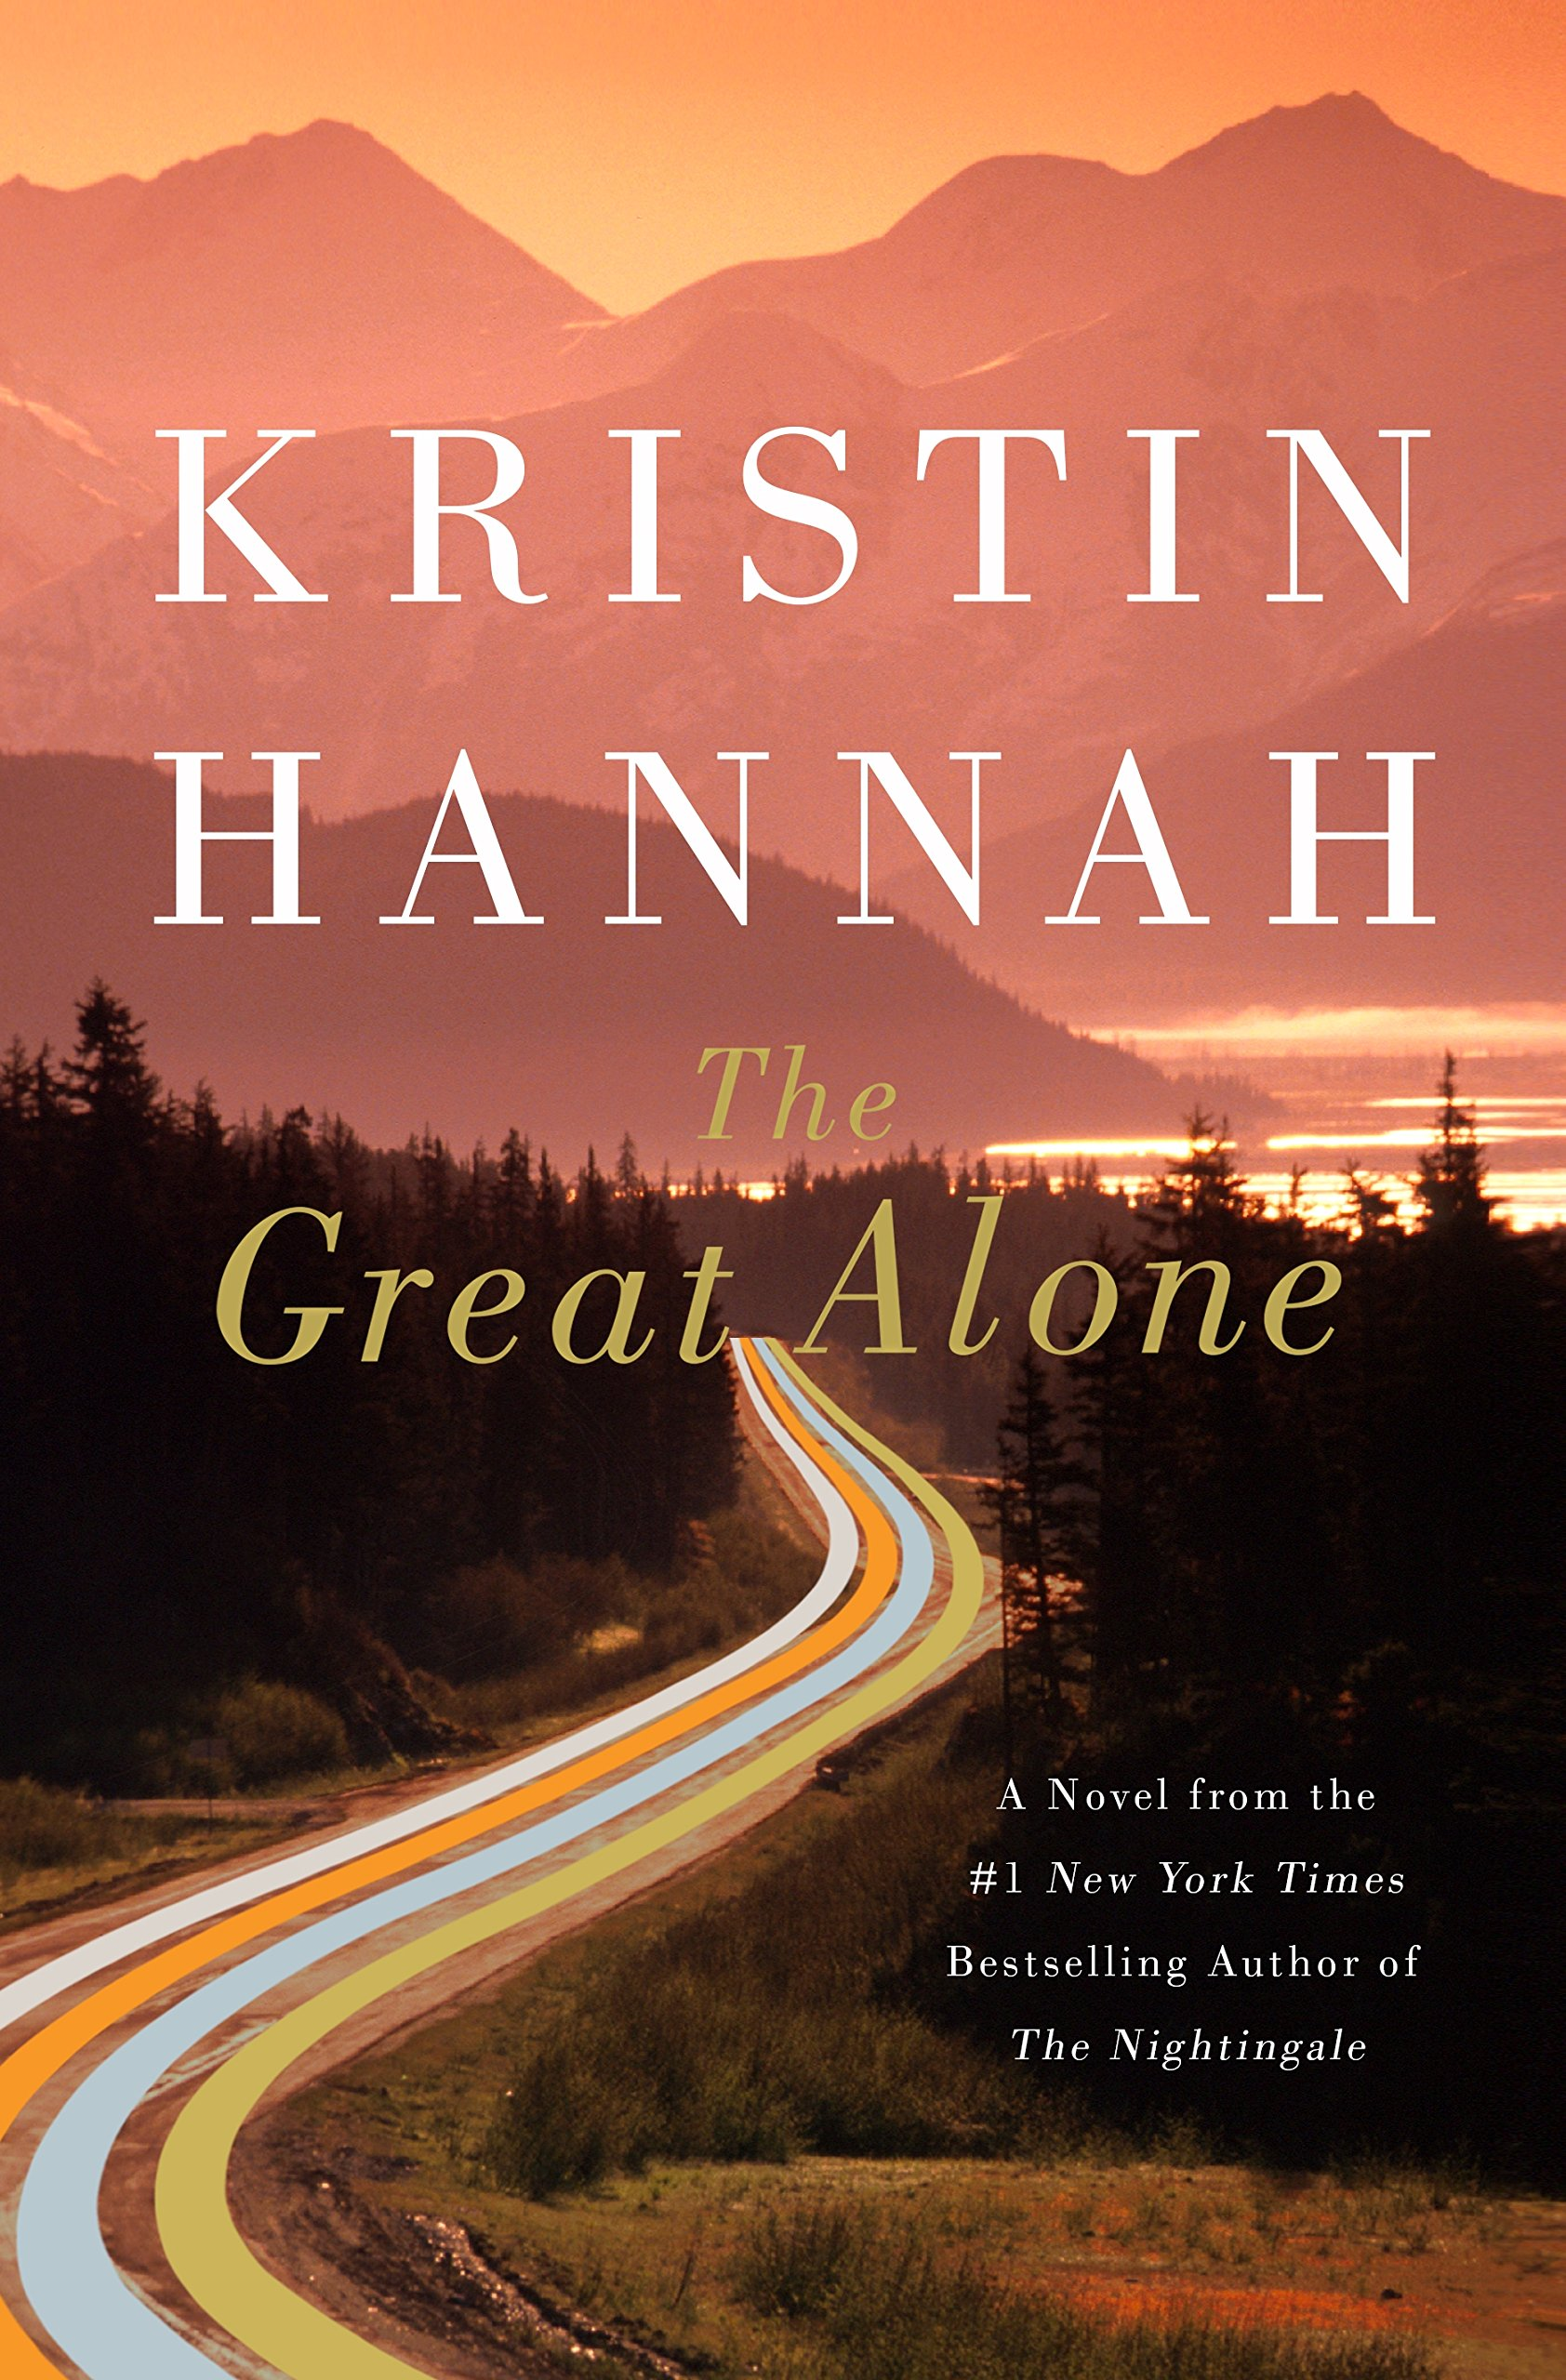 The Great Alone –  Kristen Hannan